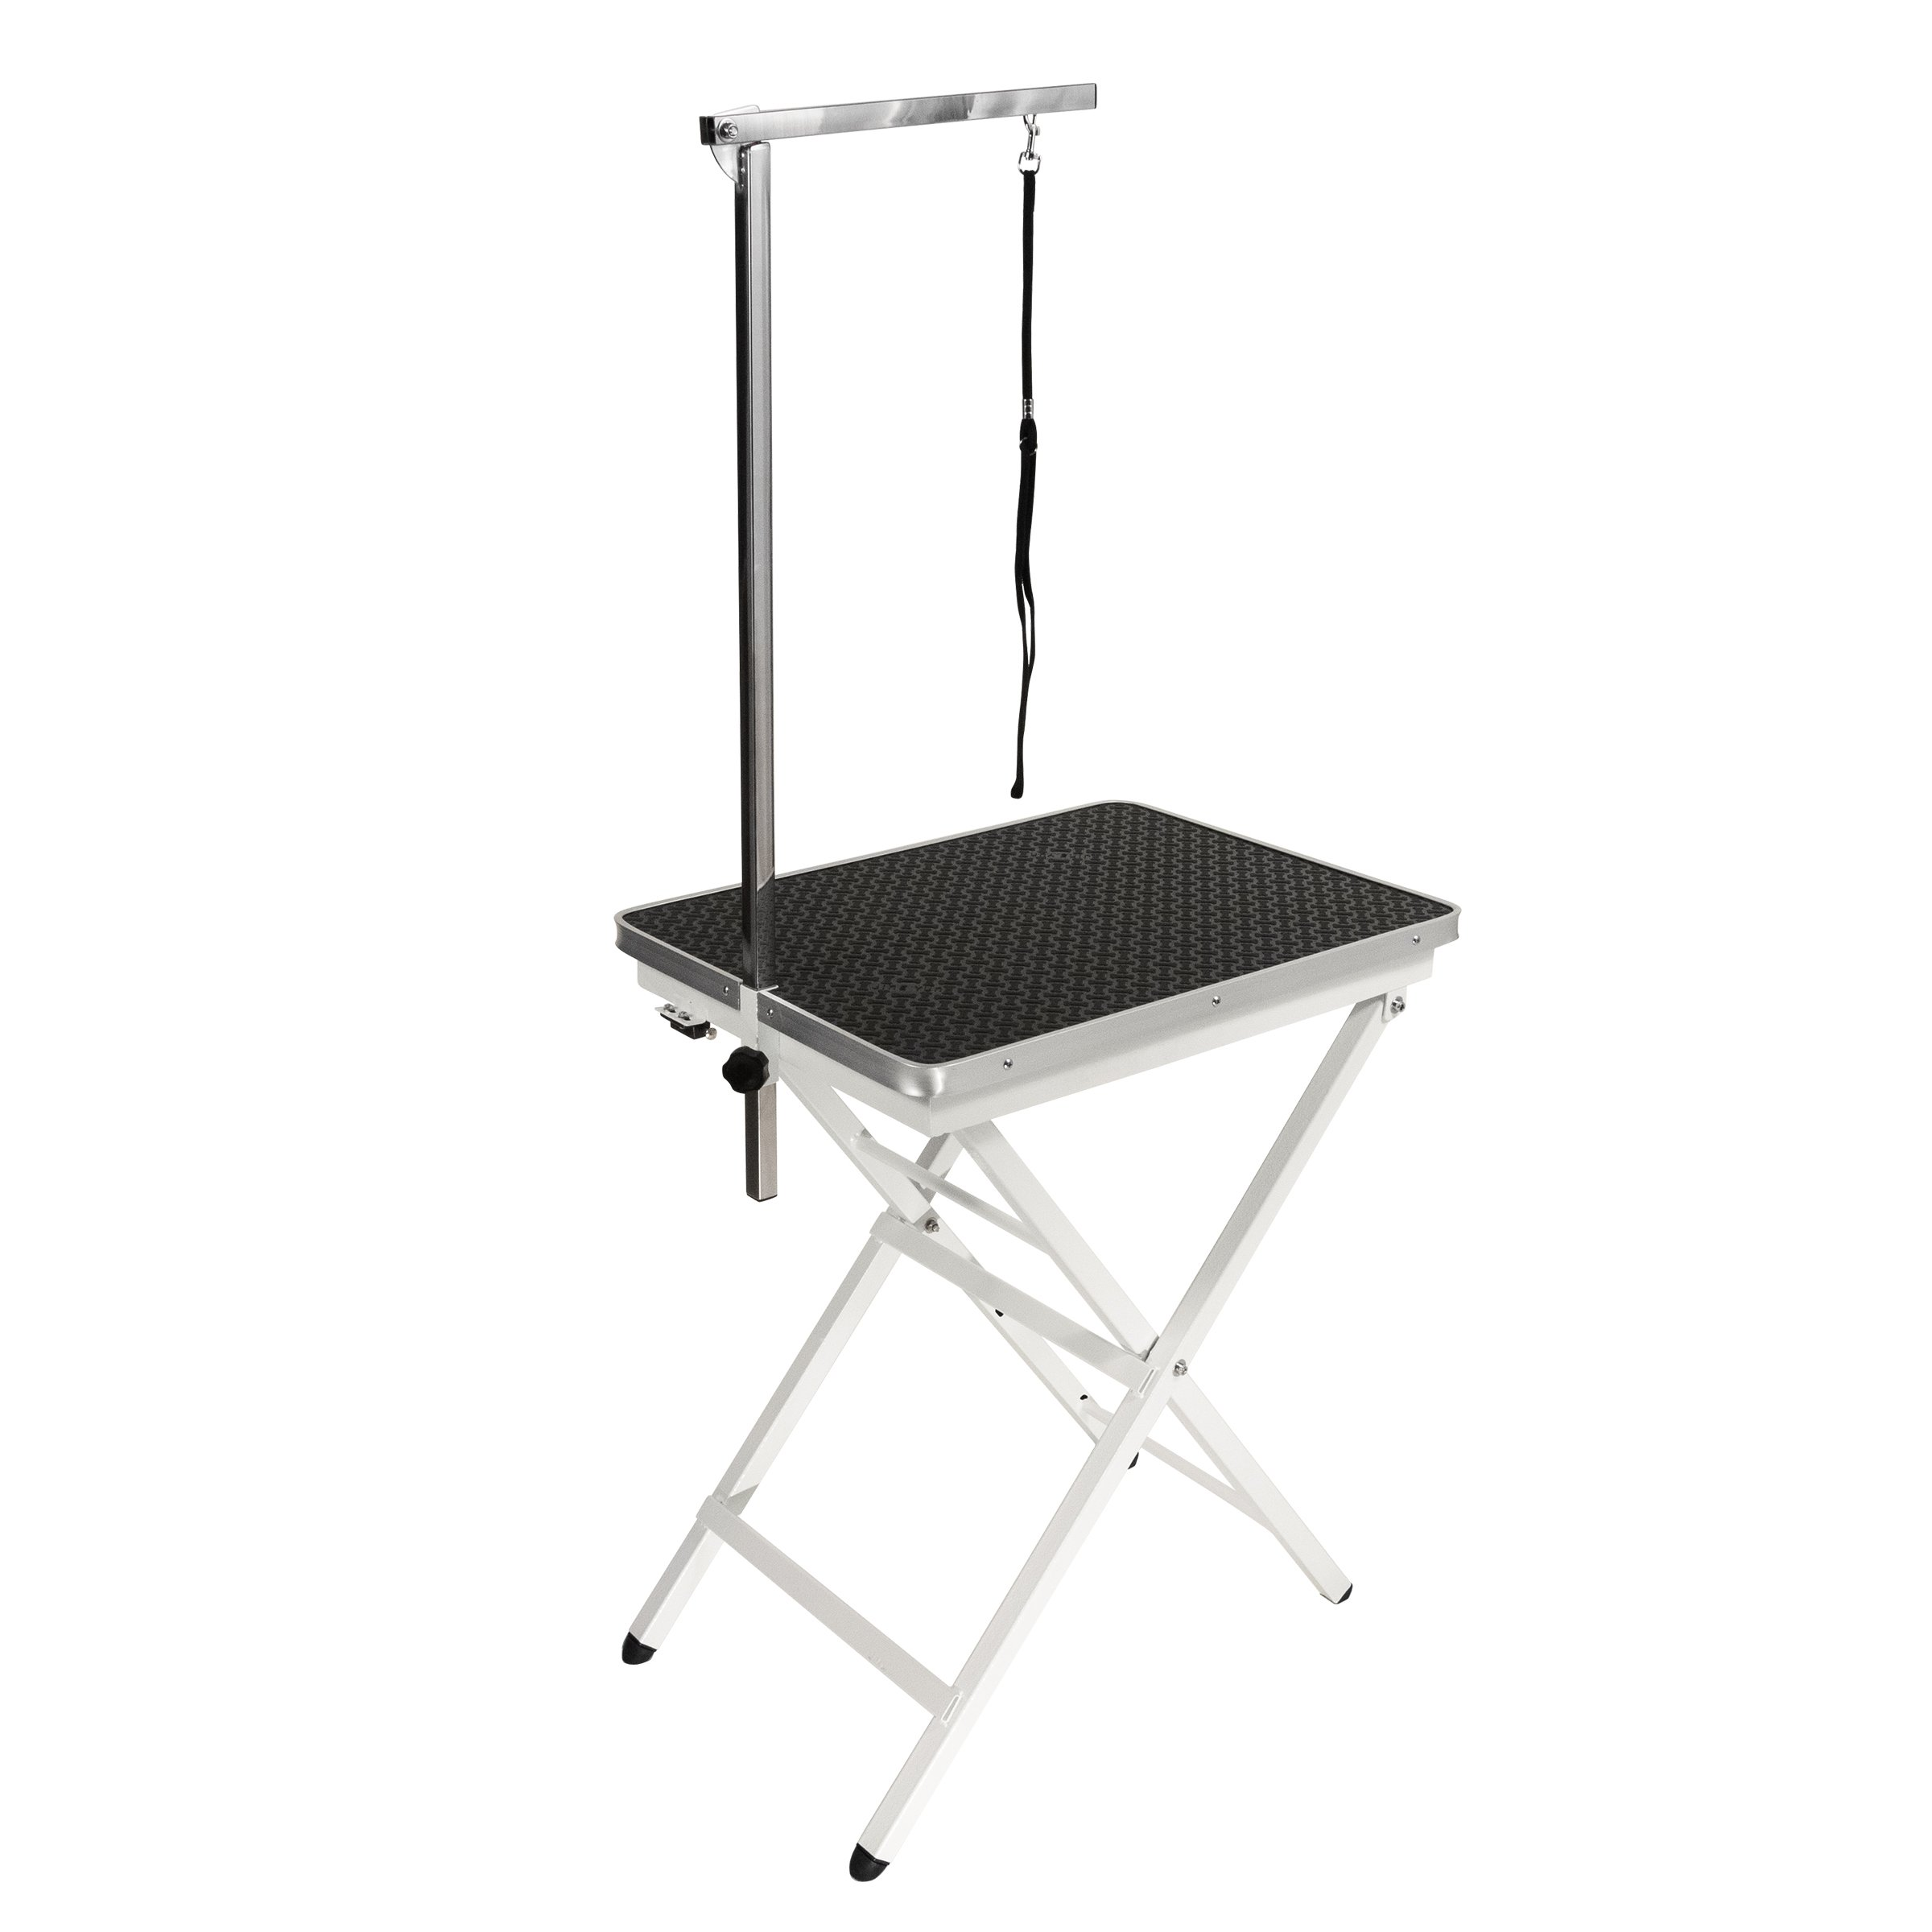 Flying Pig Grooming Pet Dog Portable Table, Black, Mini Size/24 L x 18'' W by Flying Pig Grooming